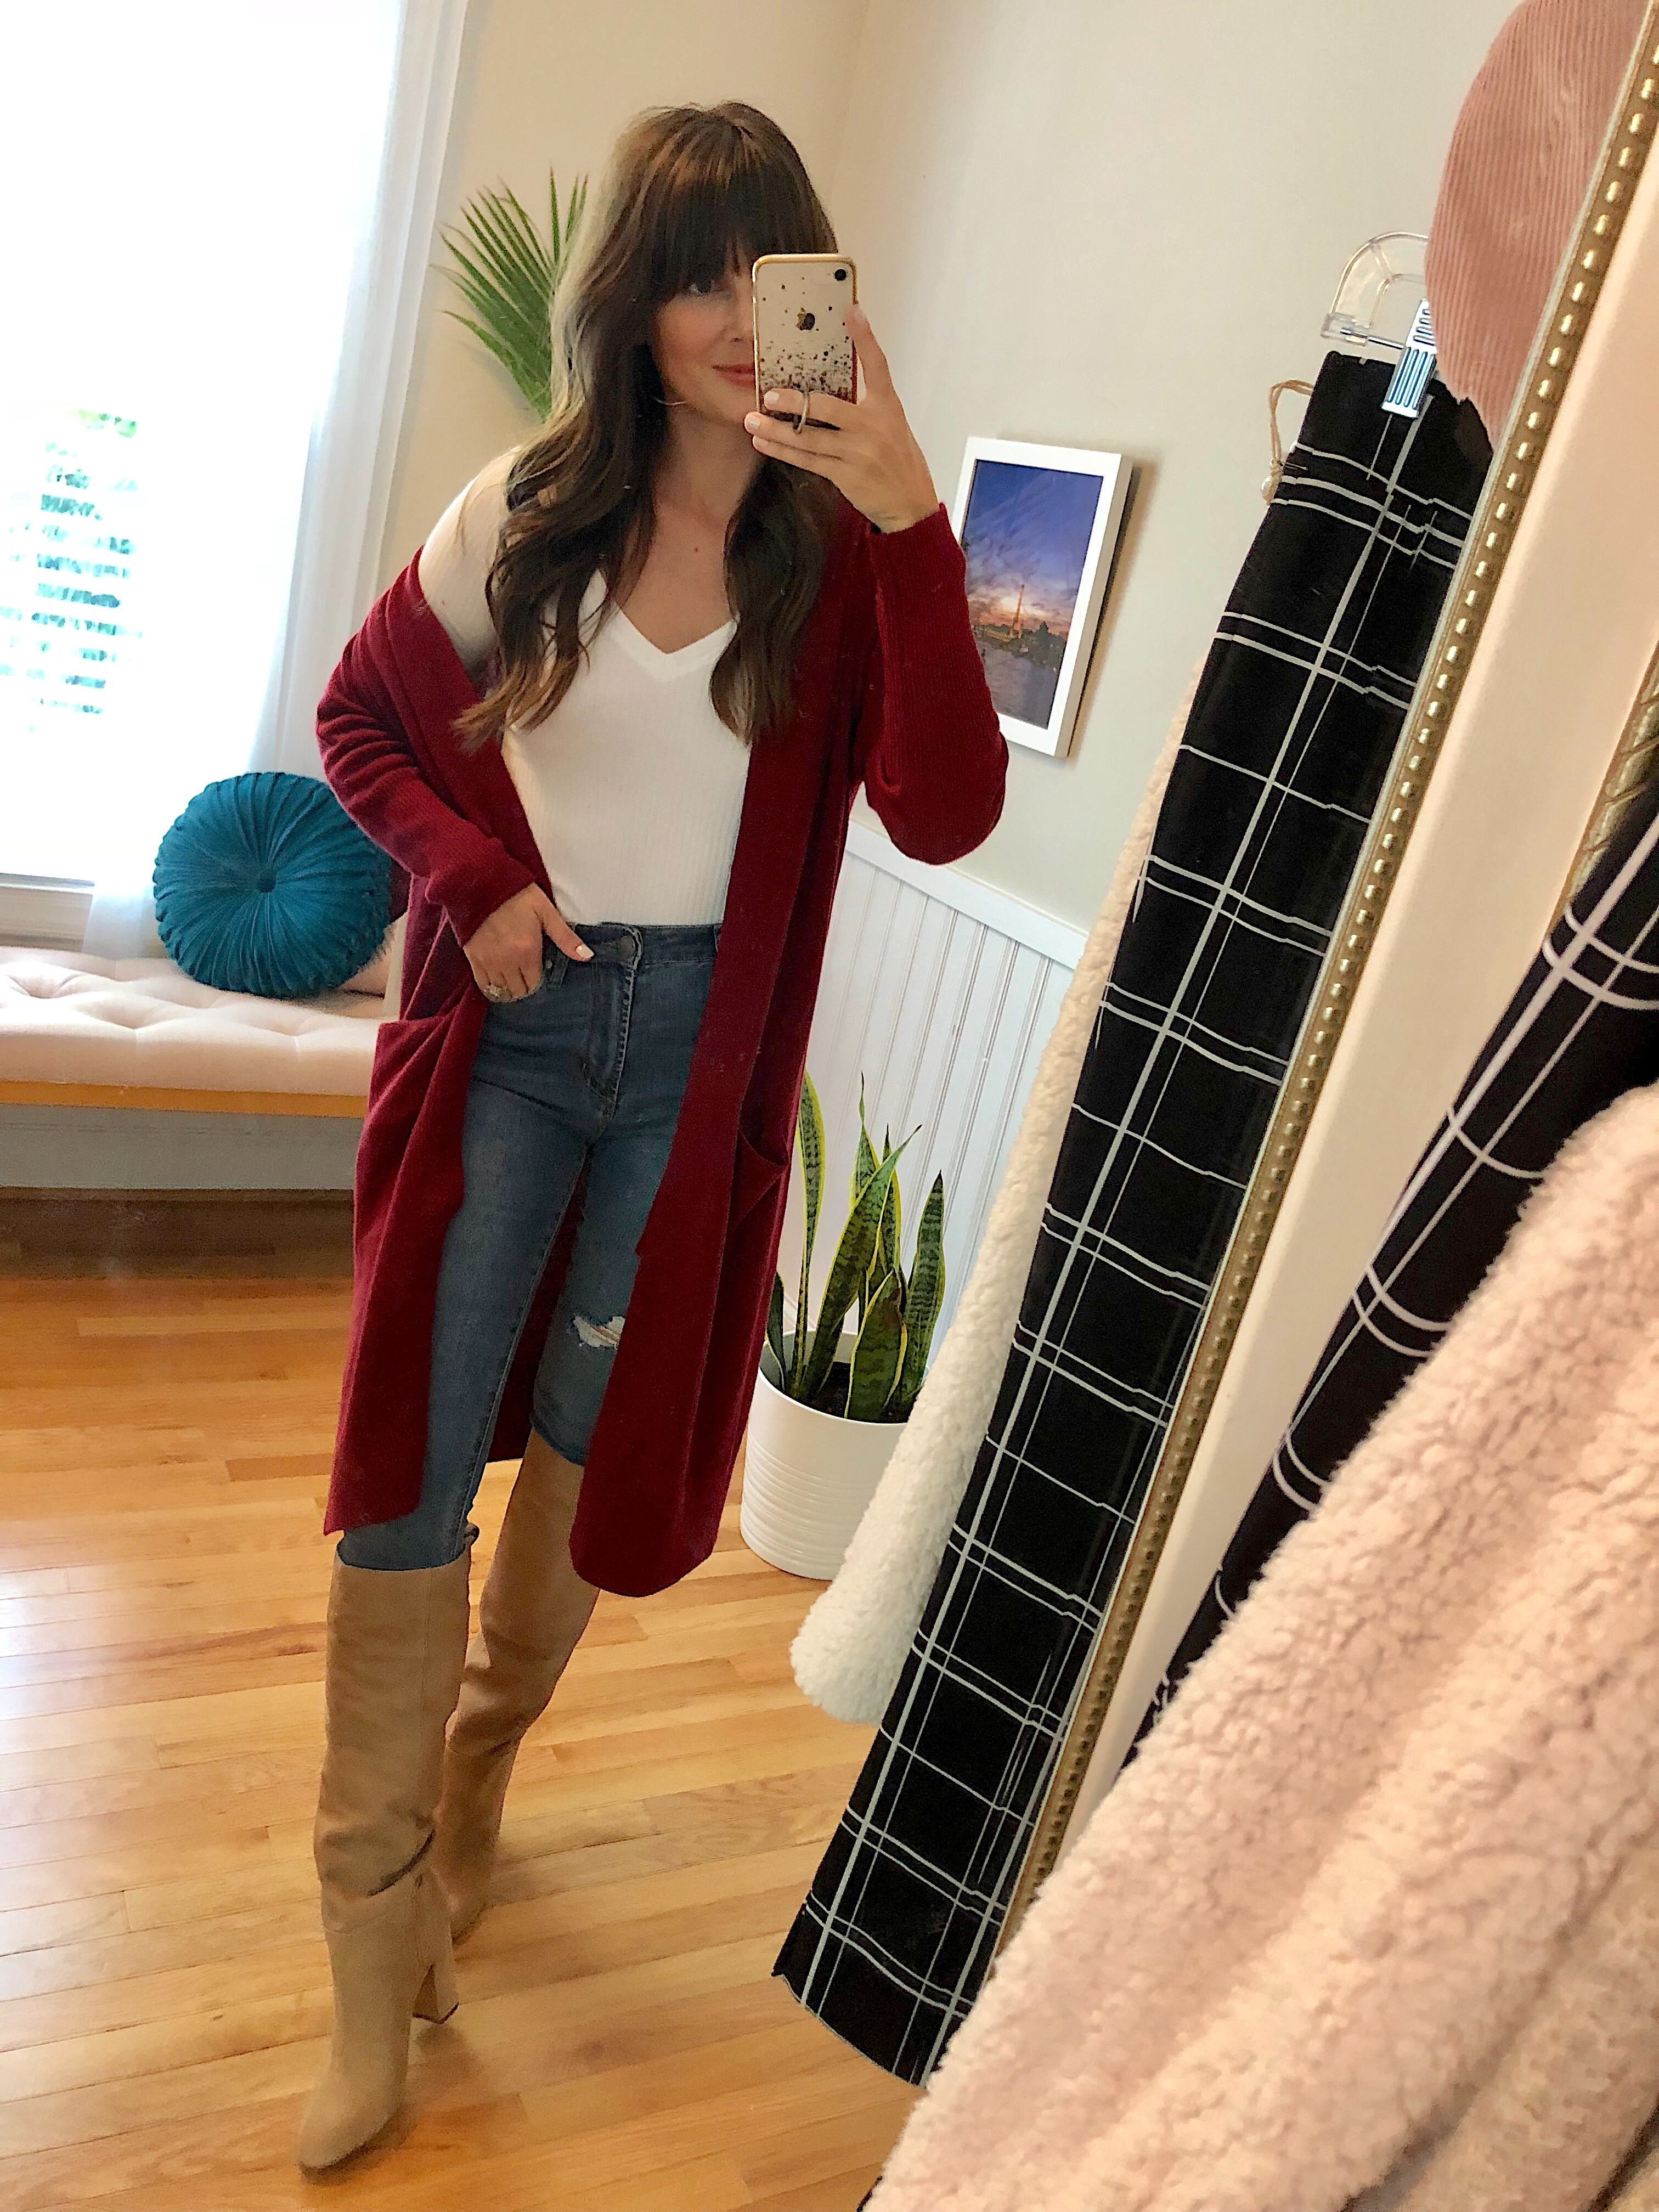 967e7c00460 Ribbed V-Neck Tee    Articles of Society High Waist Distressed Skinny Jeans     Sam Edelman Caprice Knee-High Boot